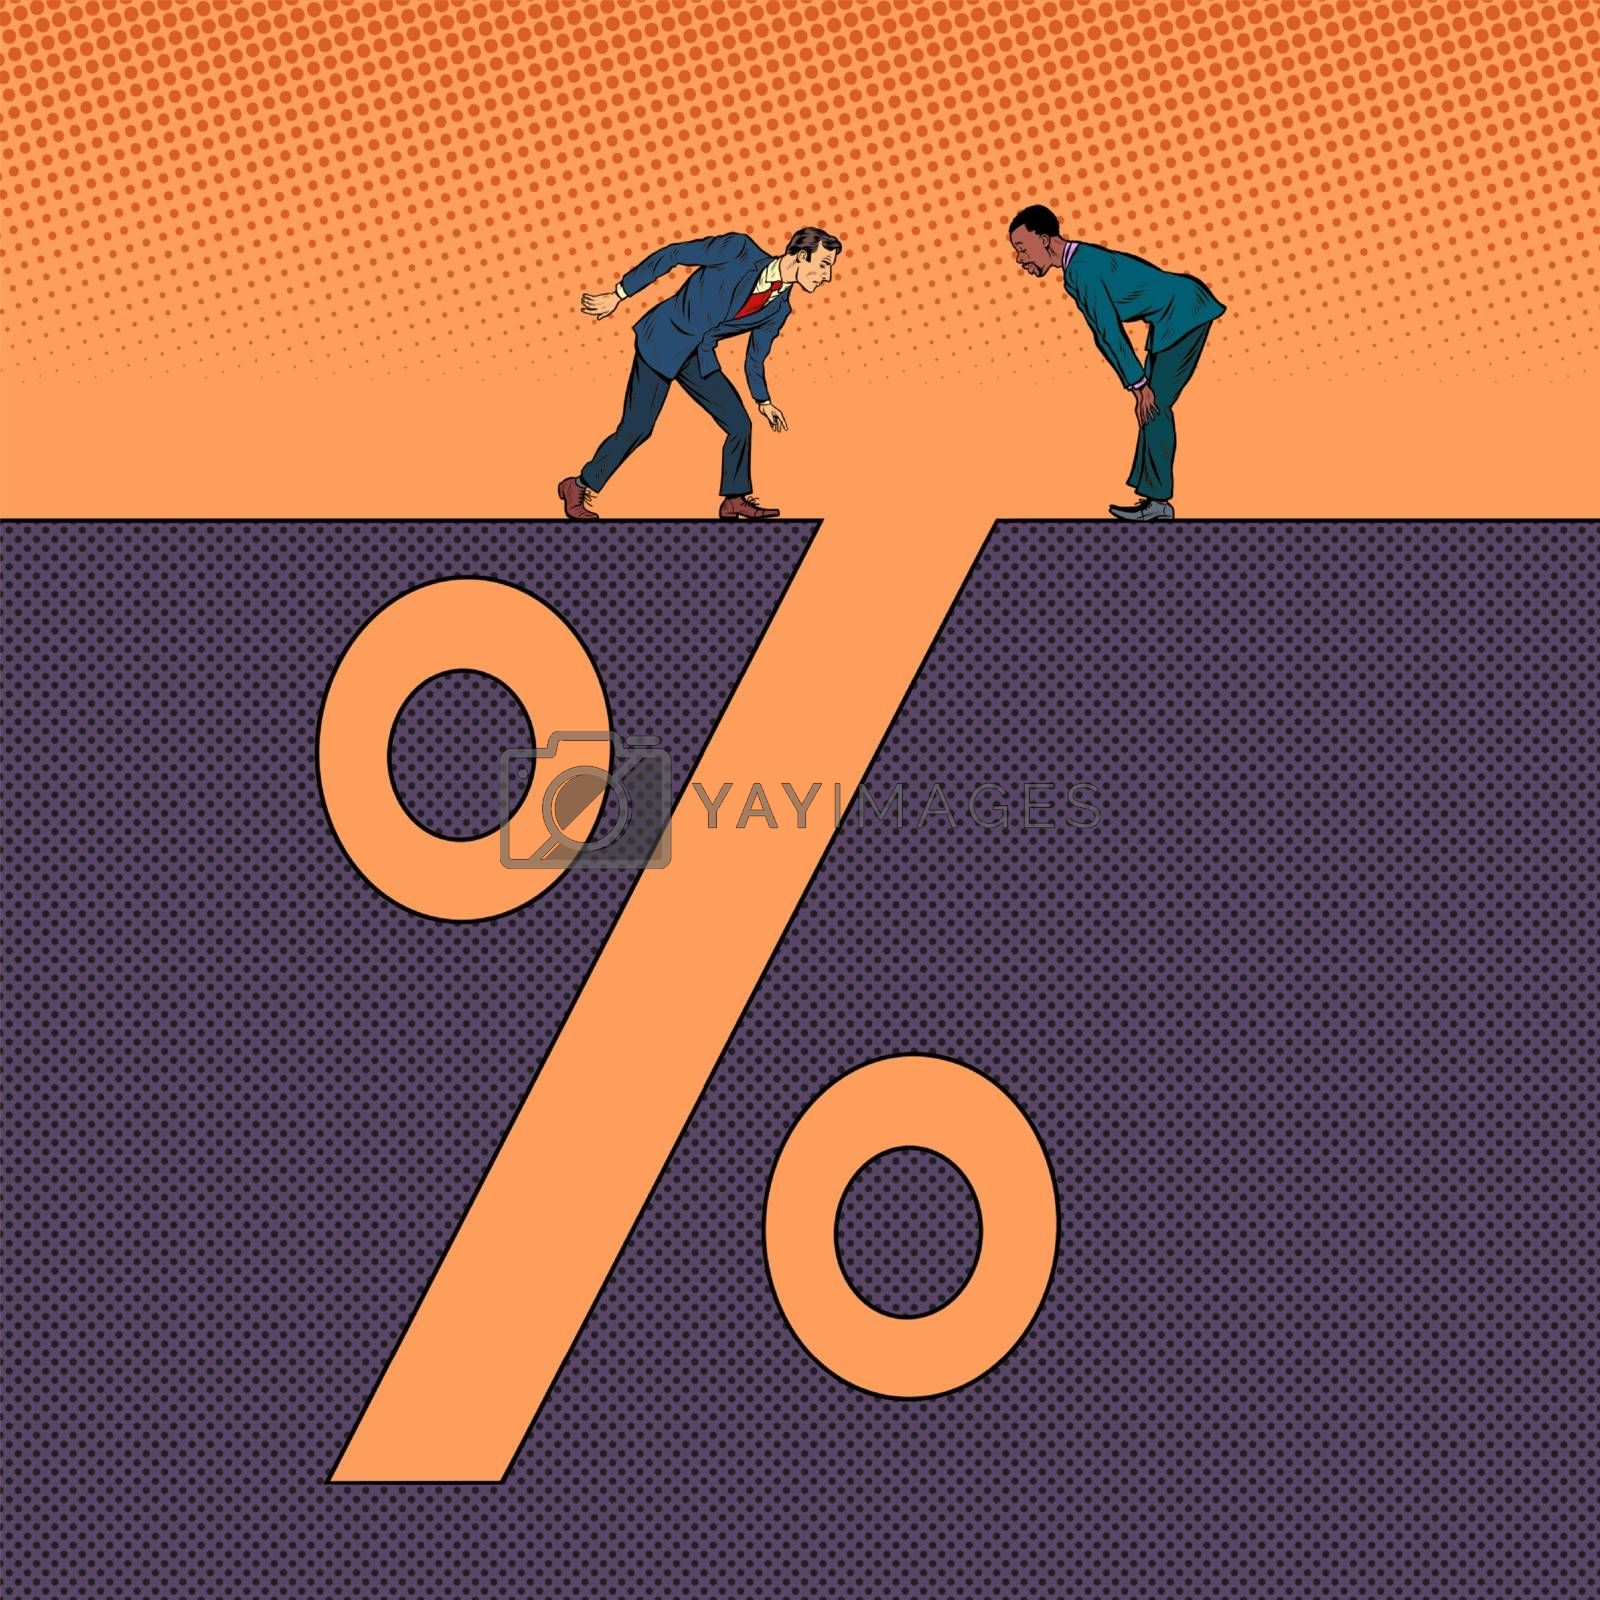 Businessmen and interest income. Man next to a deep pit silhouette. Pop art retro vector illustration 50s 60s style